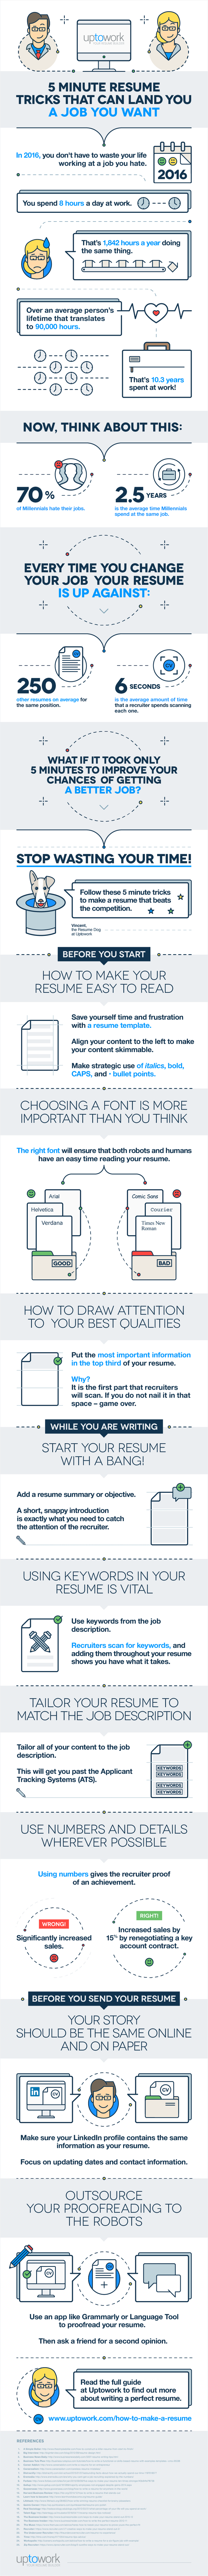 Five Minute Hacks To Improve Your Resume Infographic - e-Learning ...